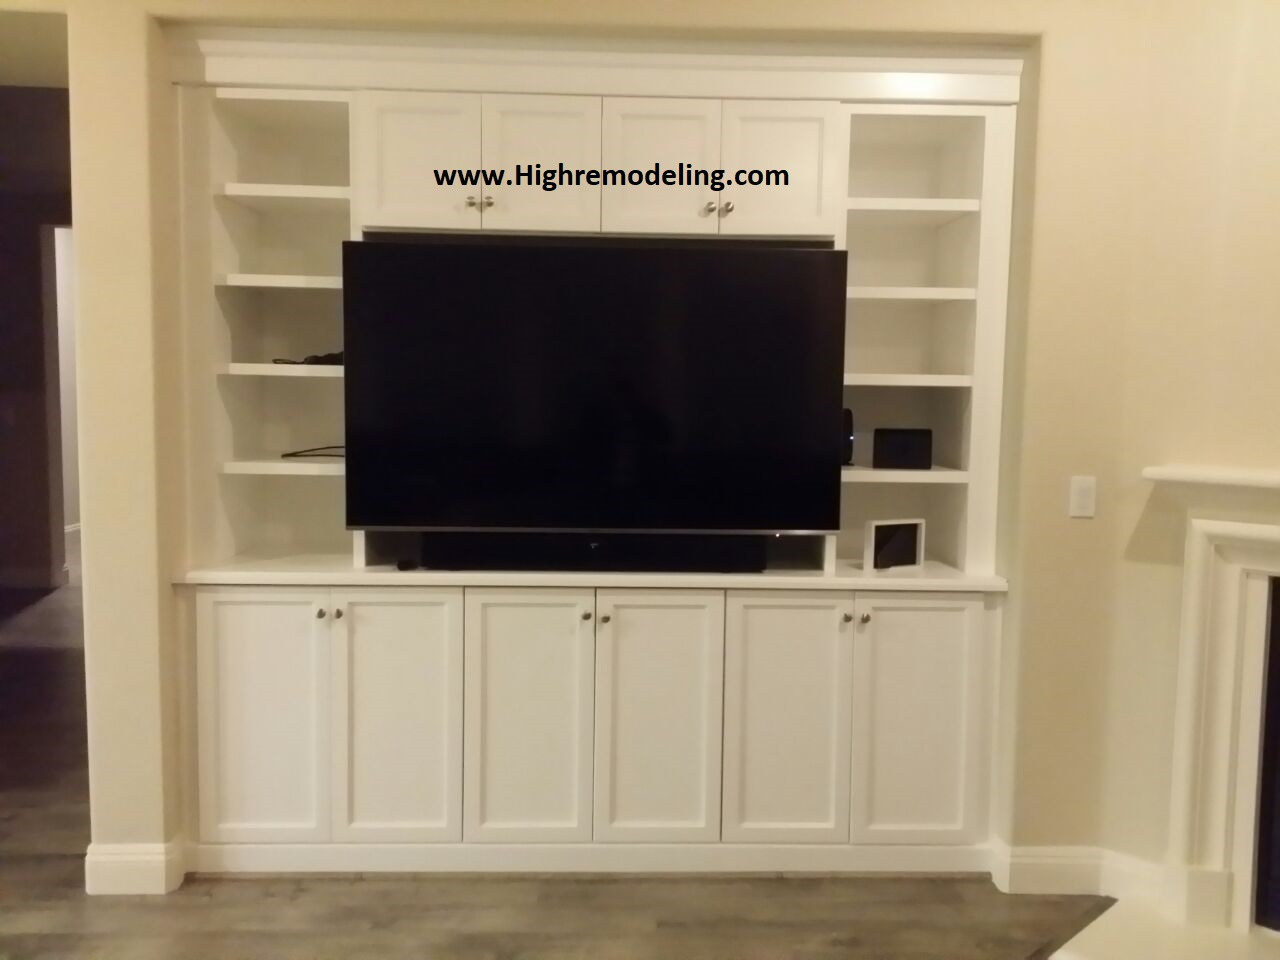 Furniture Design U0026 Making   High Tech Services Remodeling | Cabinet Refacing  | Cabinet Refinishing Sacramento Area